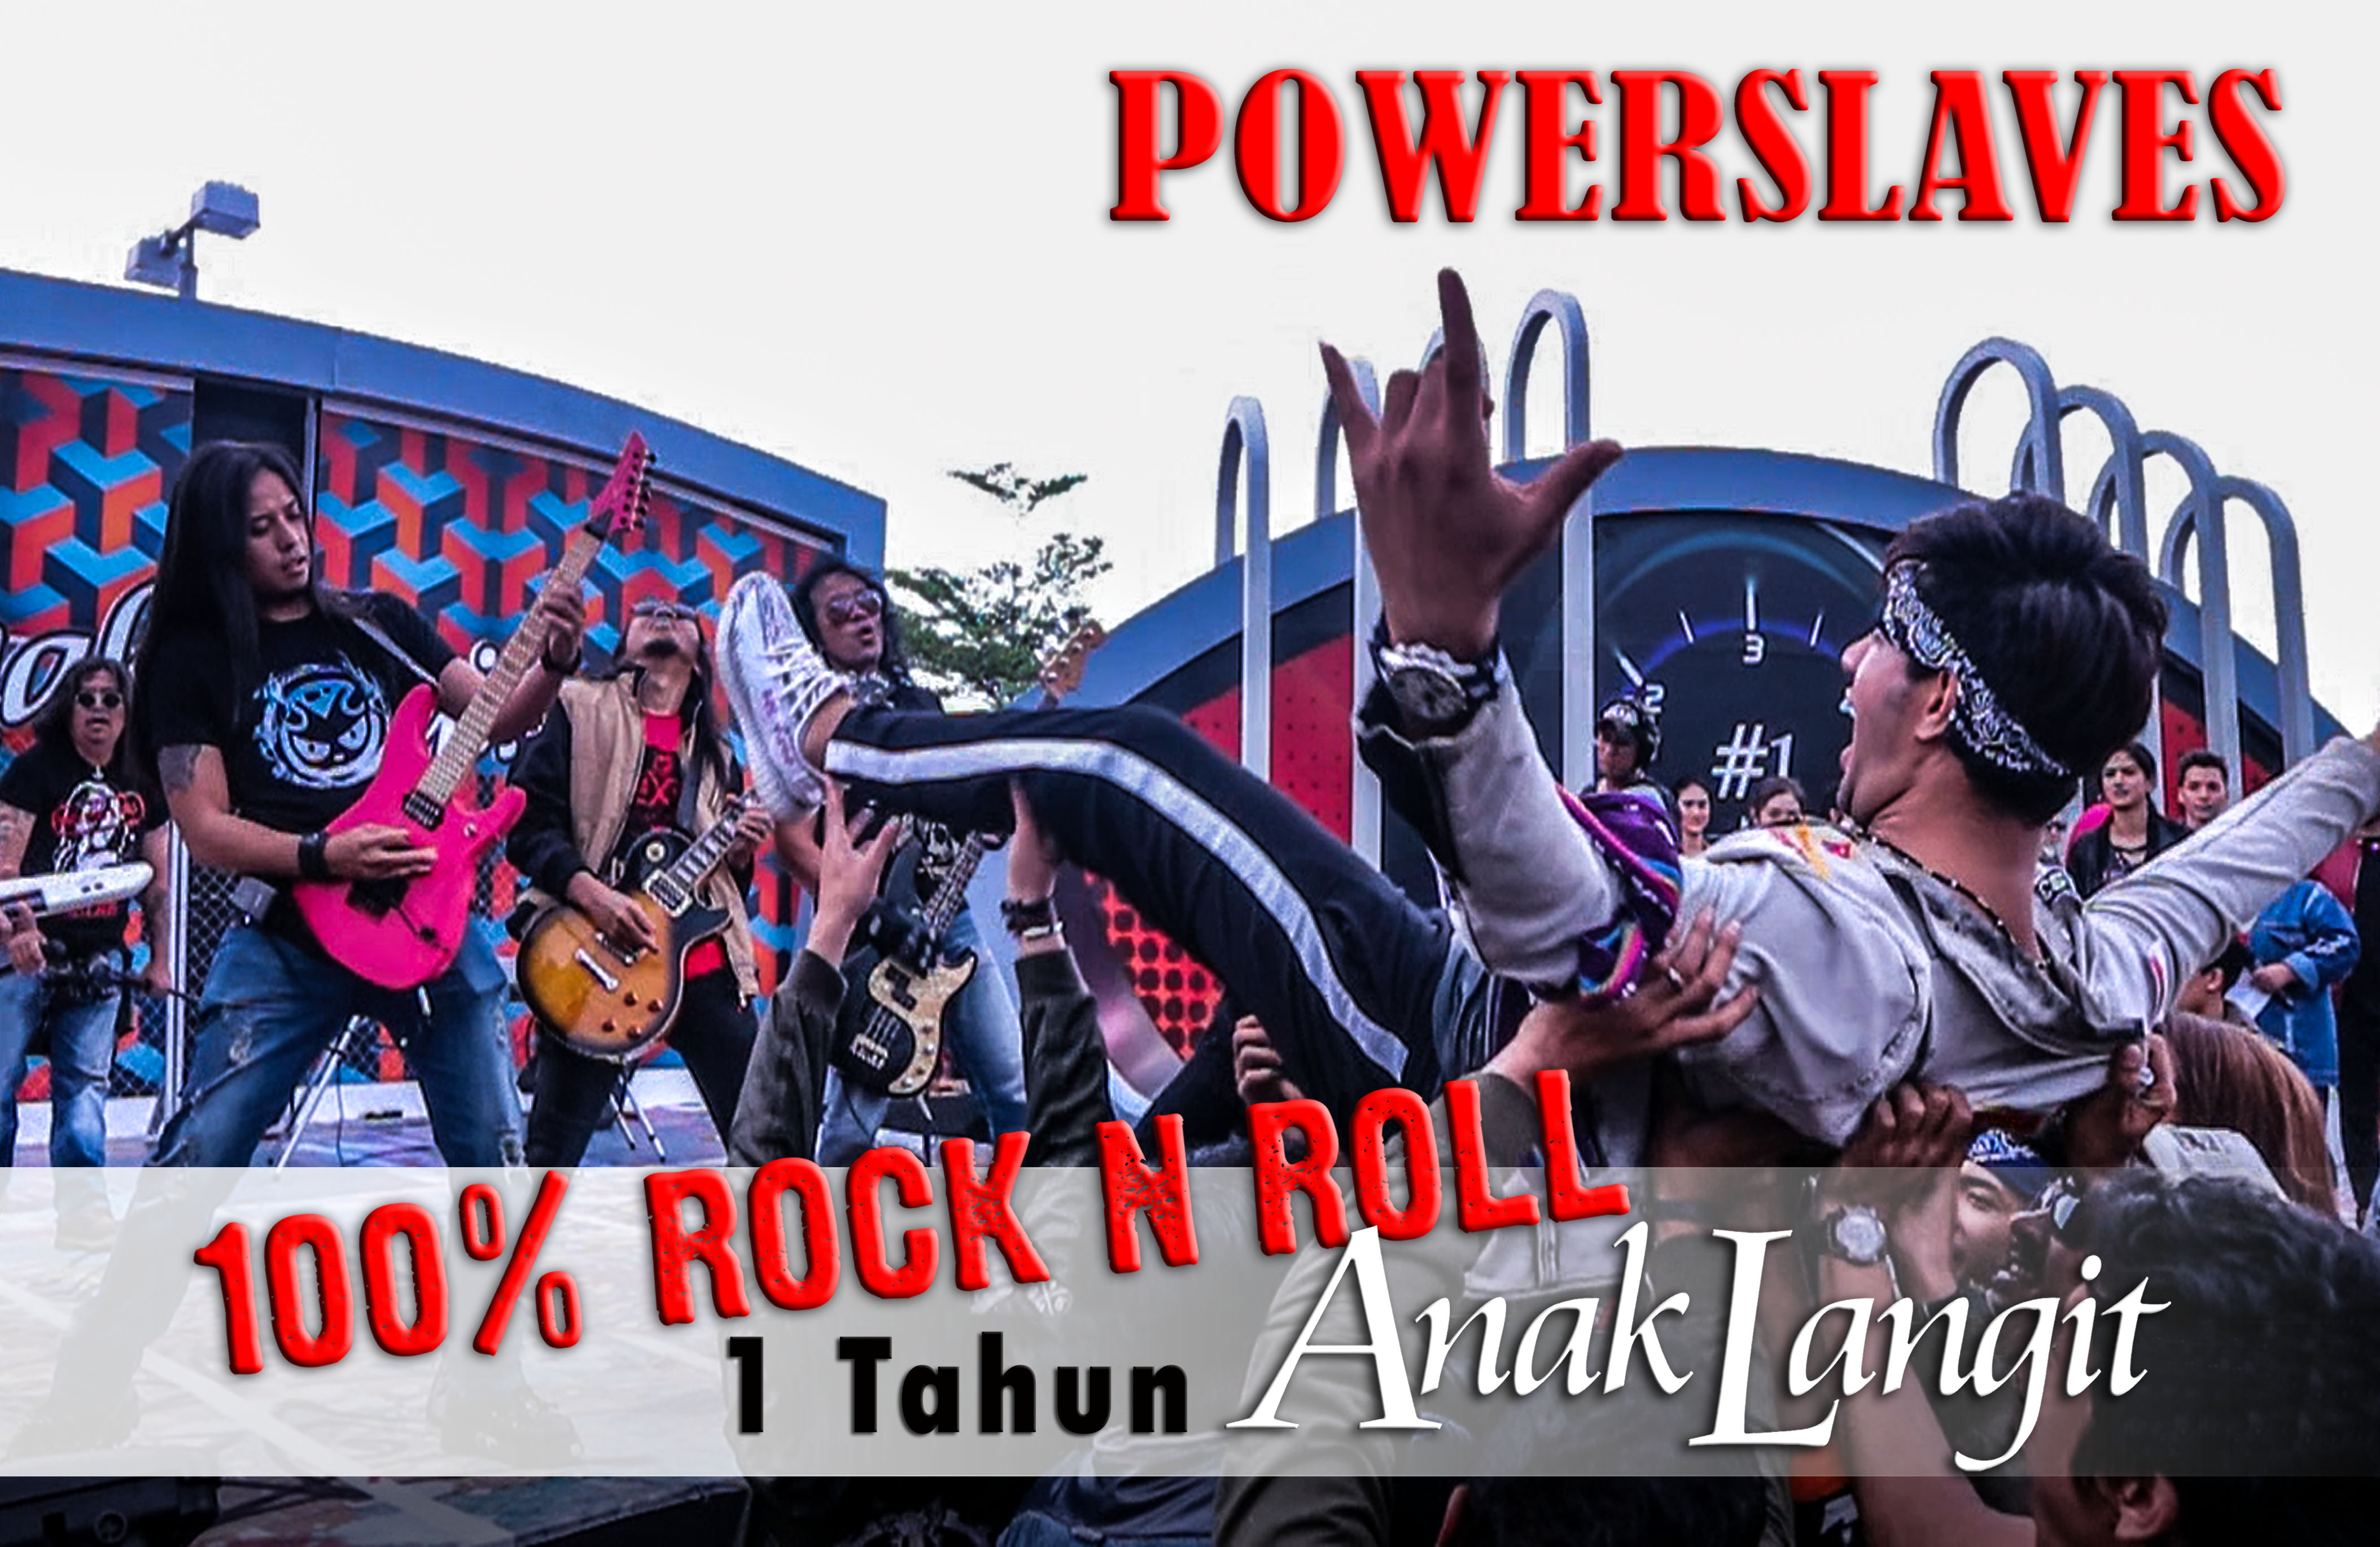 NSP/RBT/I-ring OST. ANAK LANGIT 100% ROCK N ROLL, SONG FOR THE LOVERS DAN TERUS